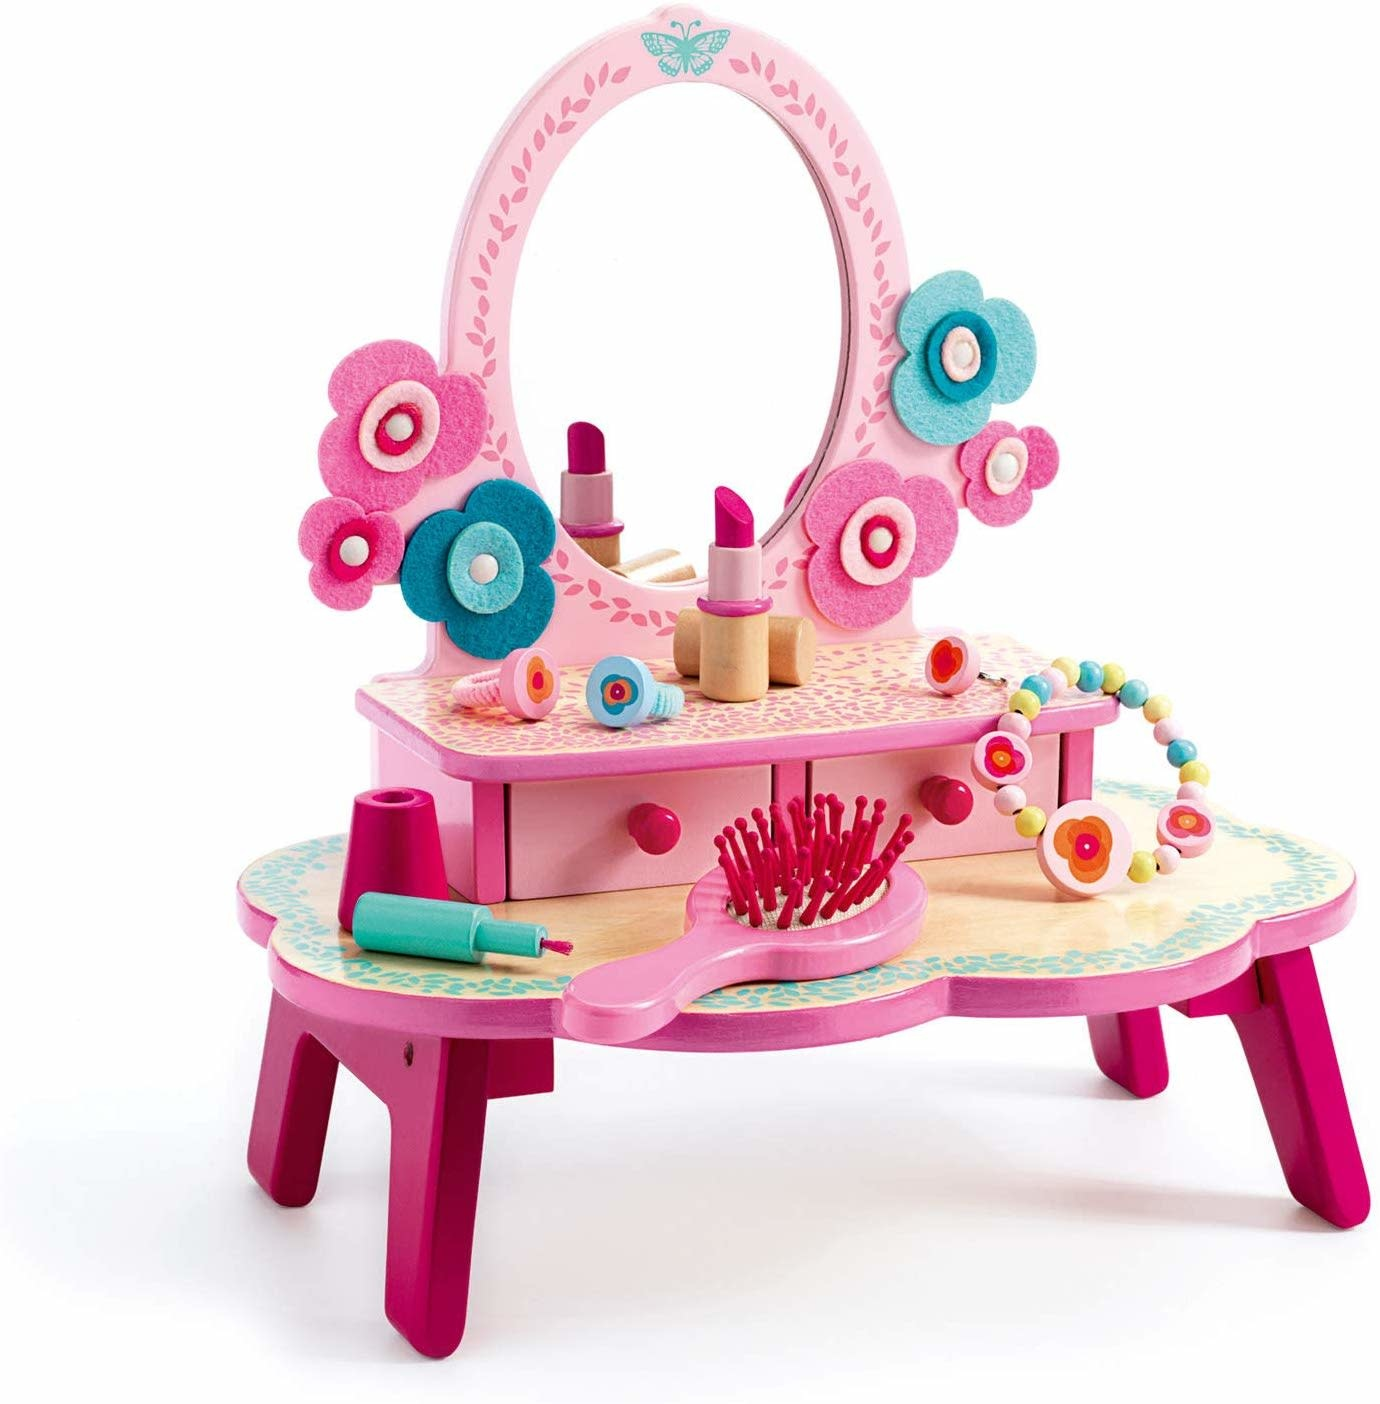 flora dressing table role play toy-1